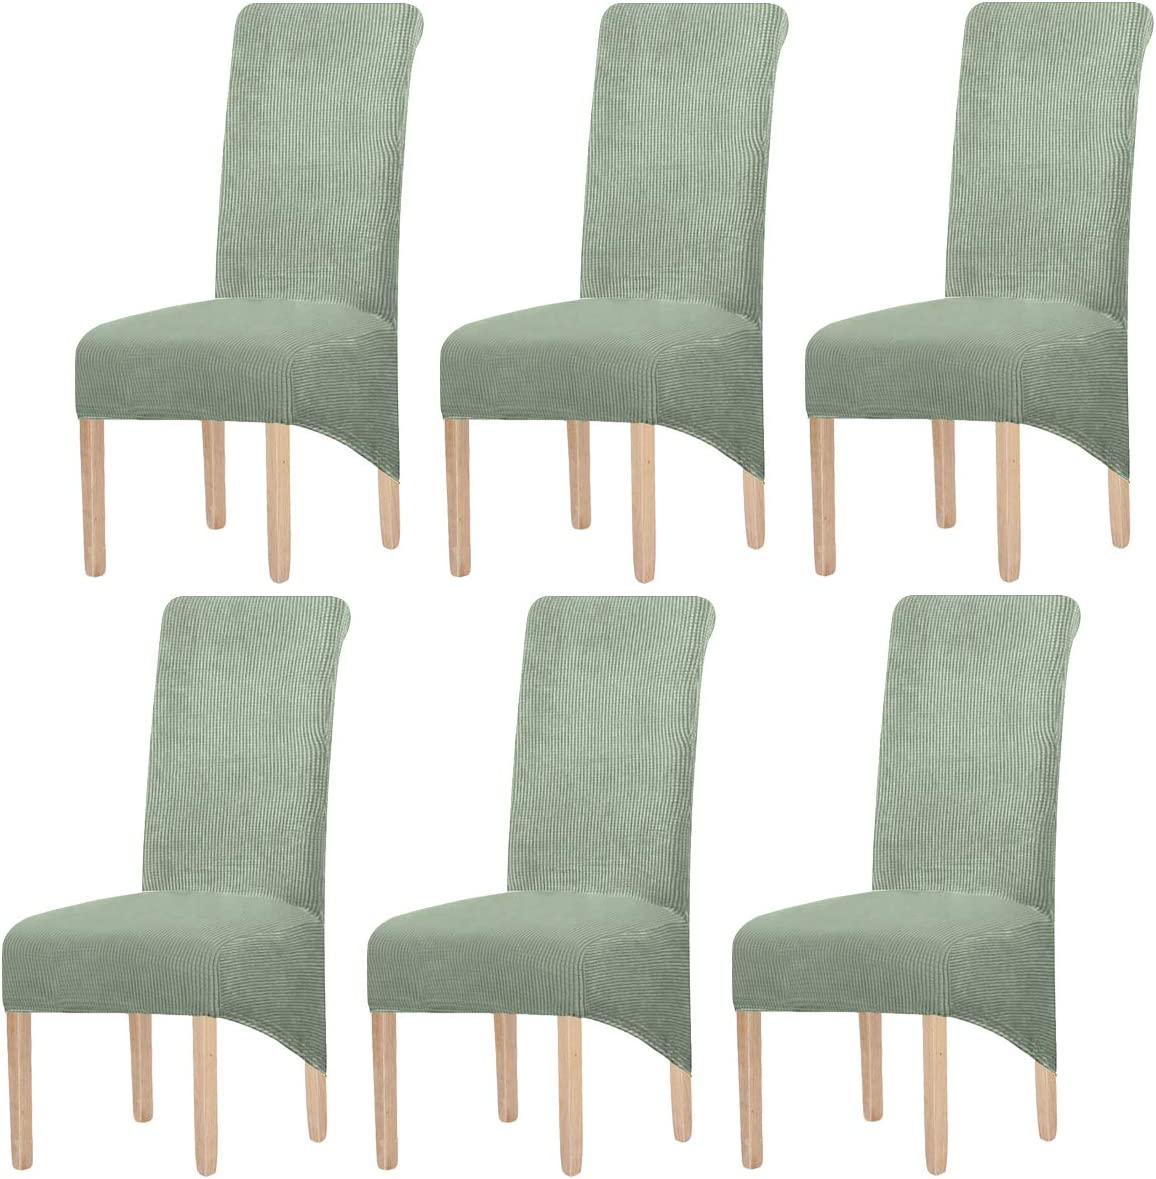 KELUINA XL Dining Manufacturer regenerated product Chair Covers Set of 2 Removable Wa 4 Stretch Sale special price 6